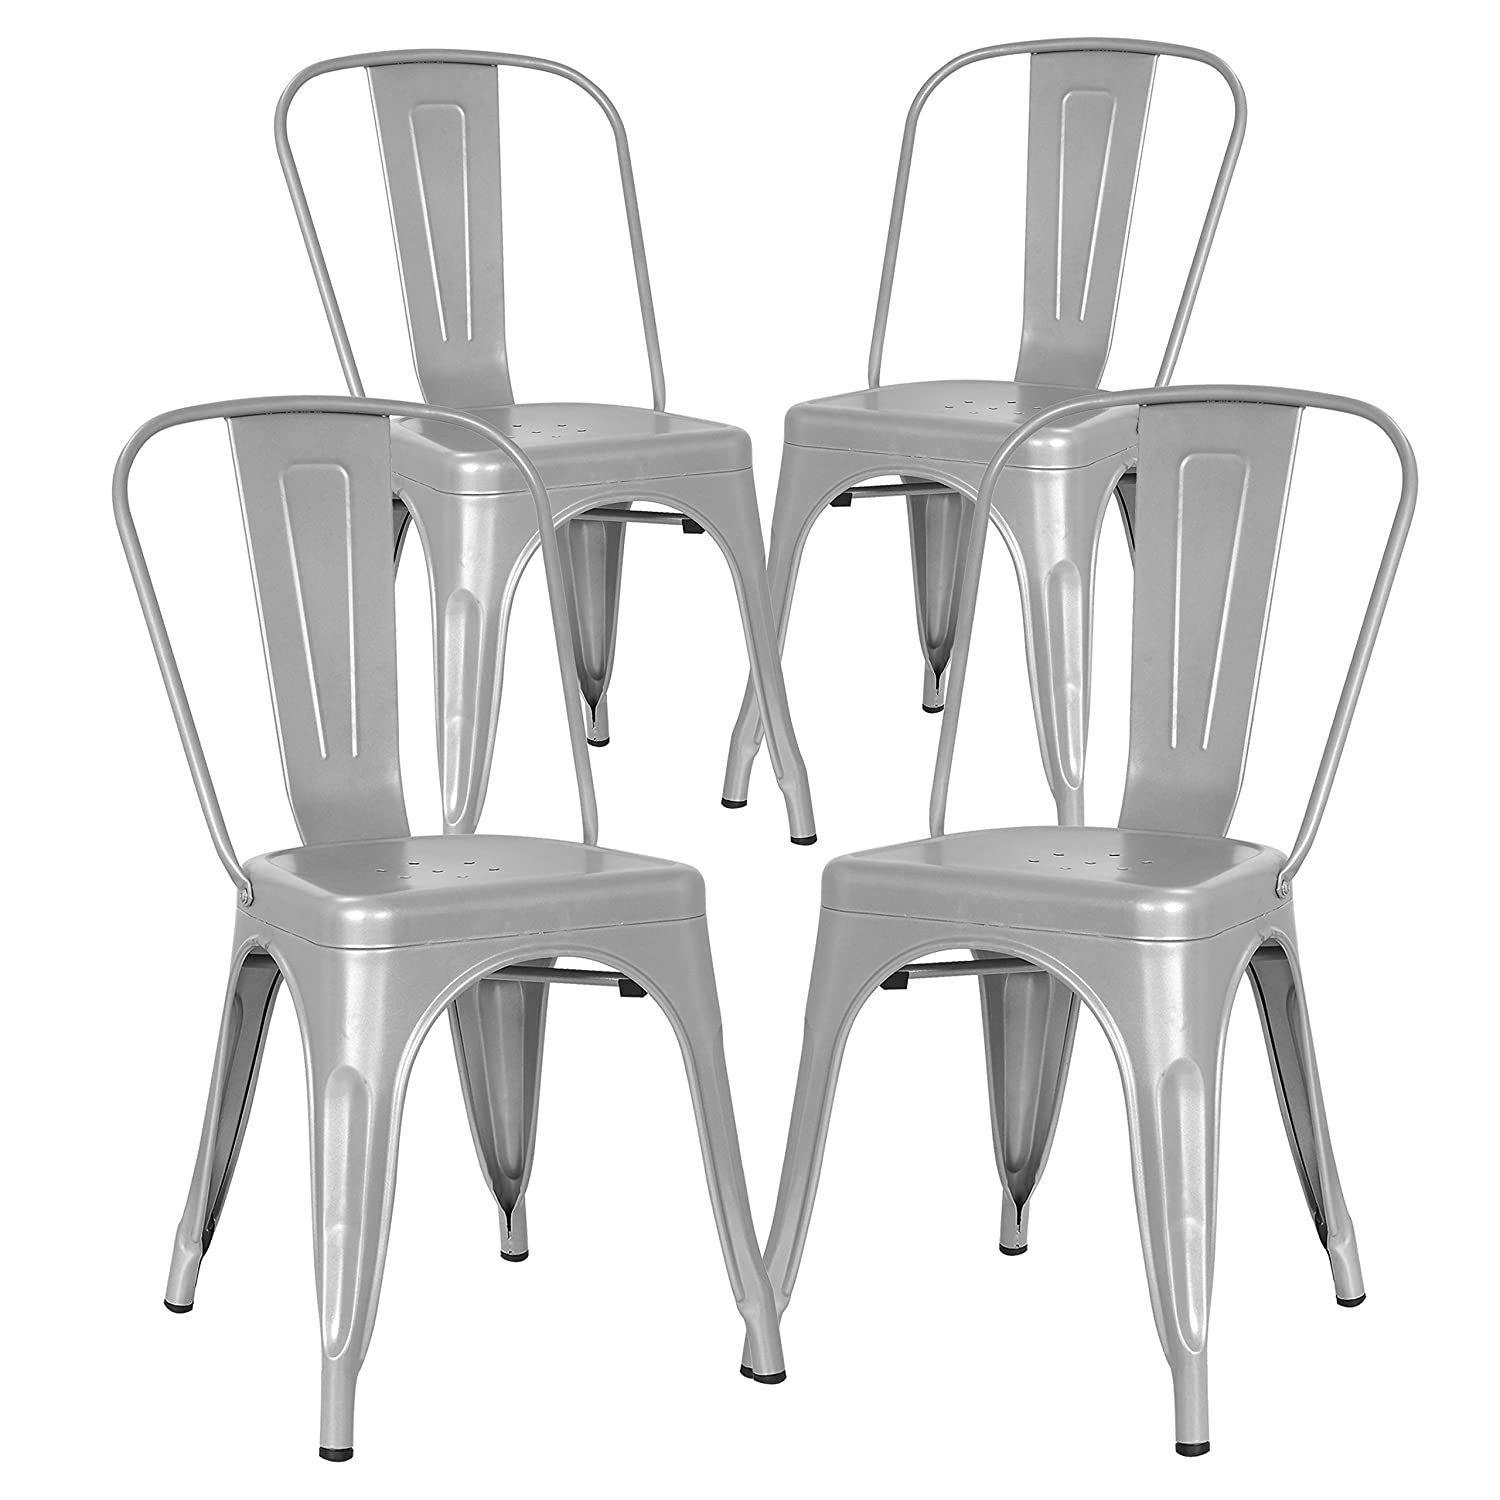 Poly and Bark Trattoria Side Chair in Grey (Set of 4)